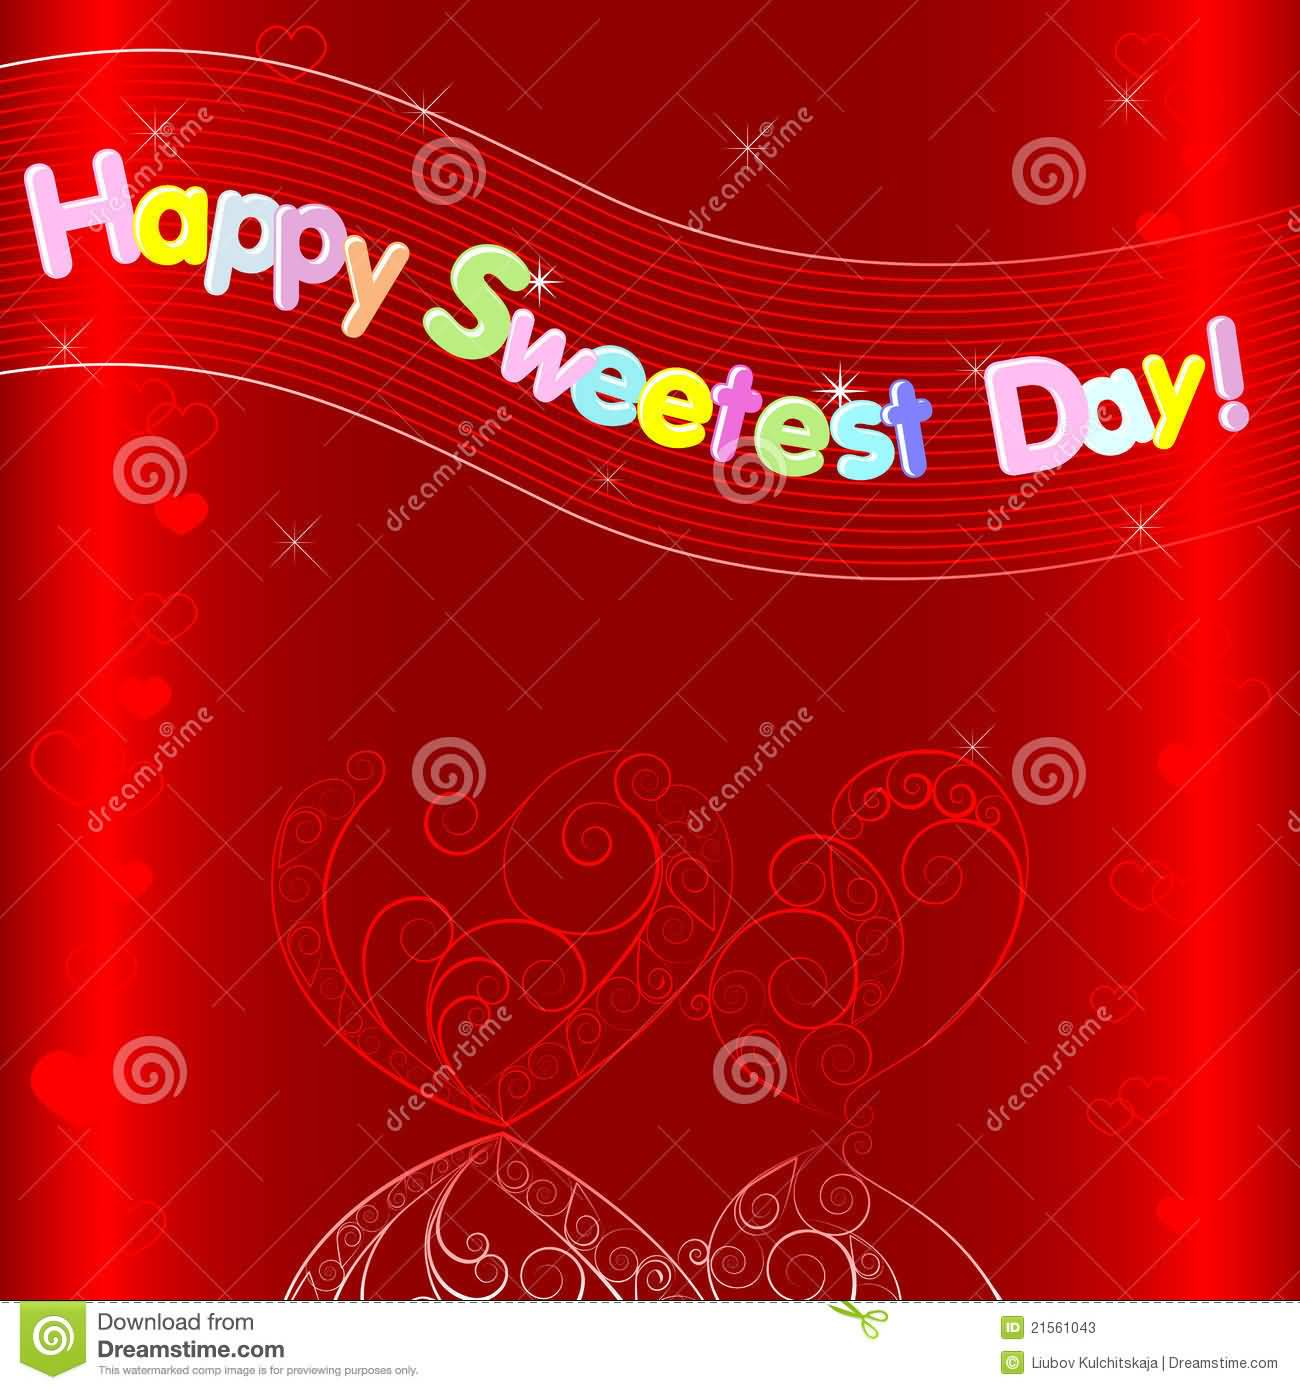 26 Beautiful Happy Sweetest Day Greeting Card Images And Photos